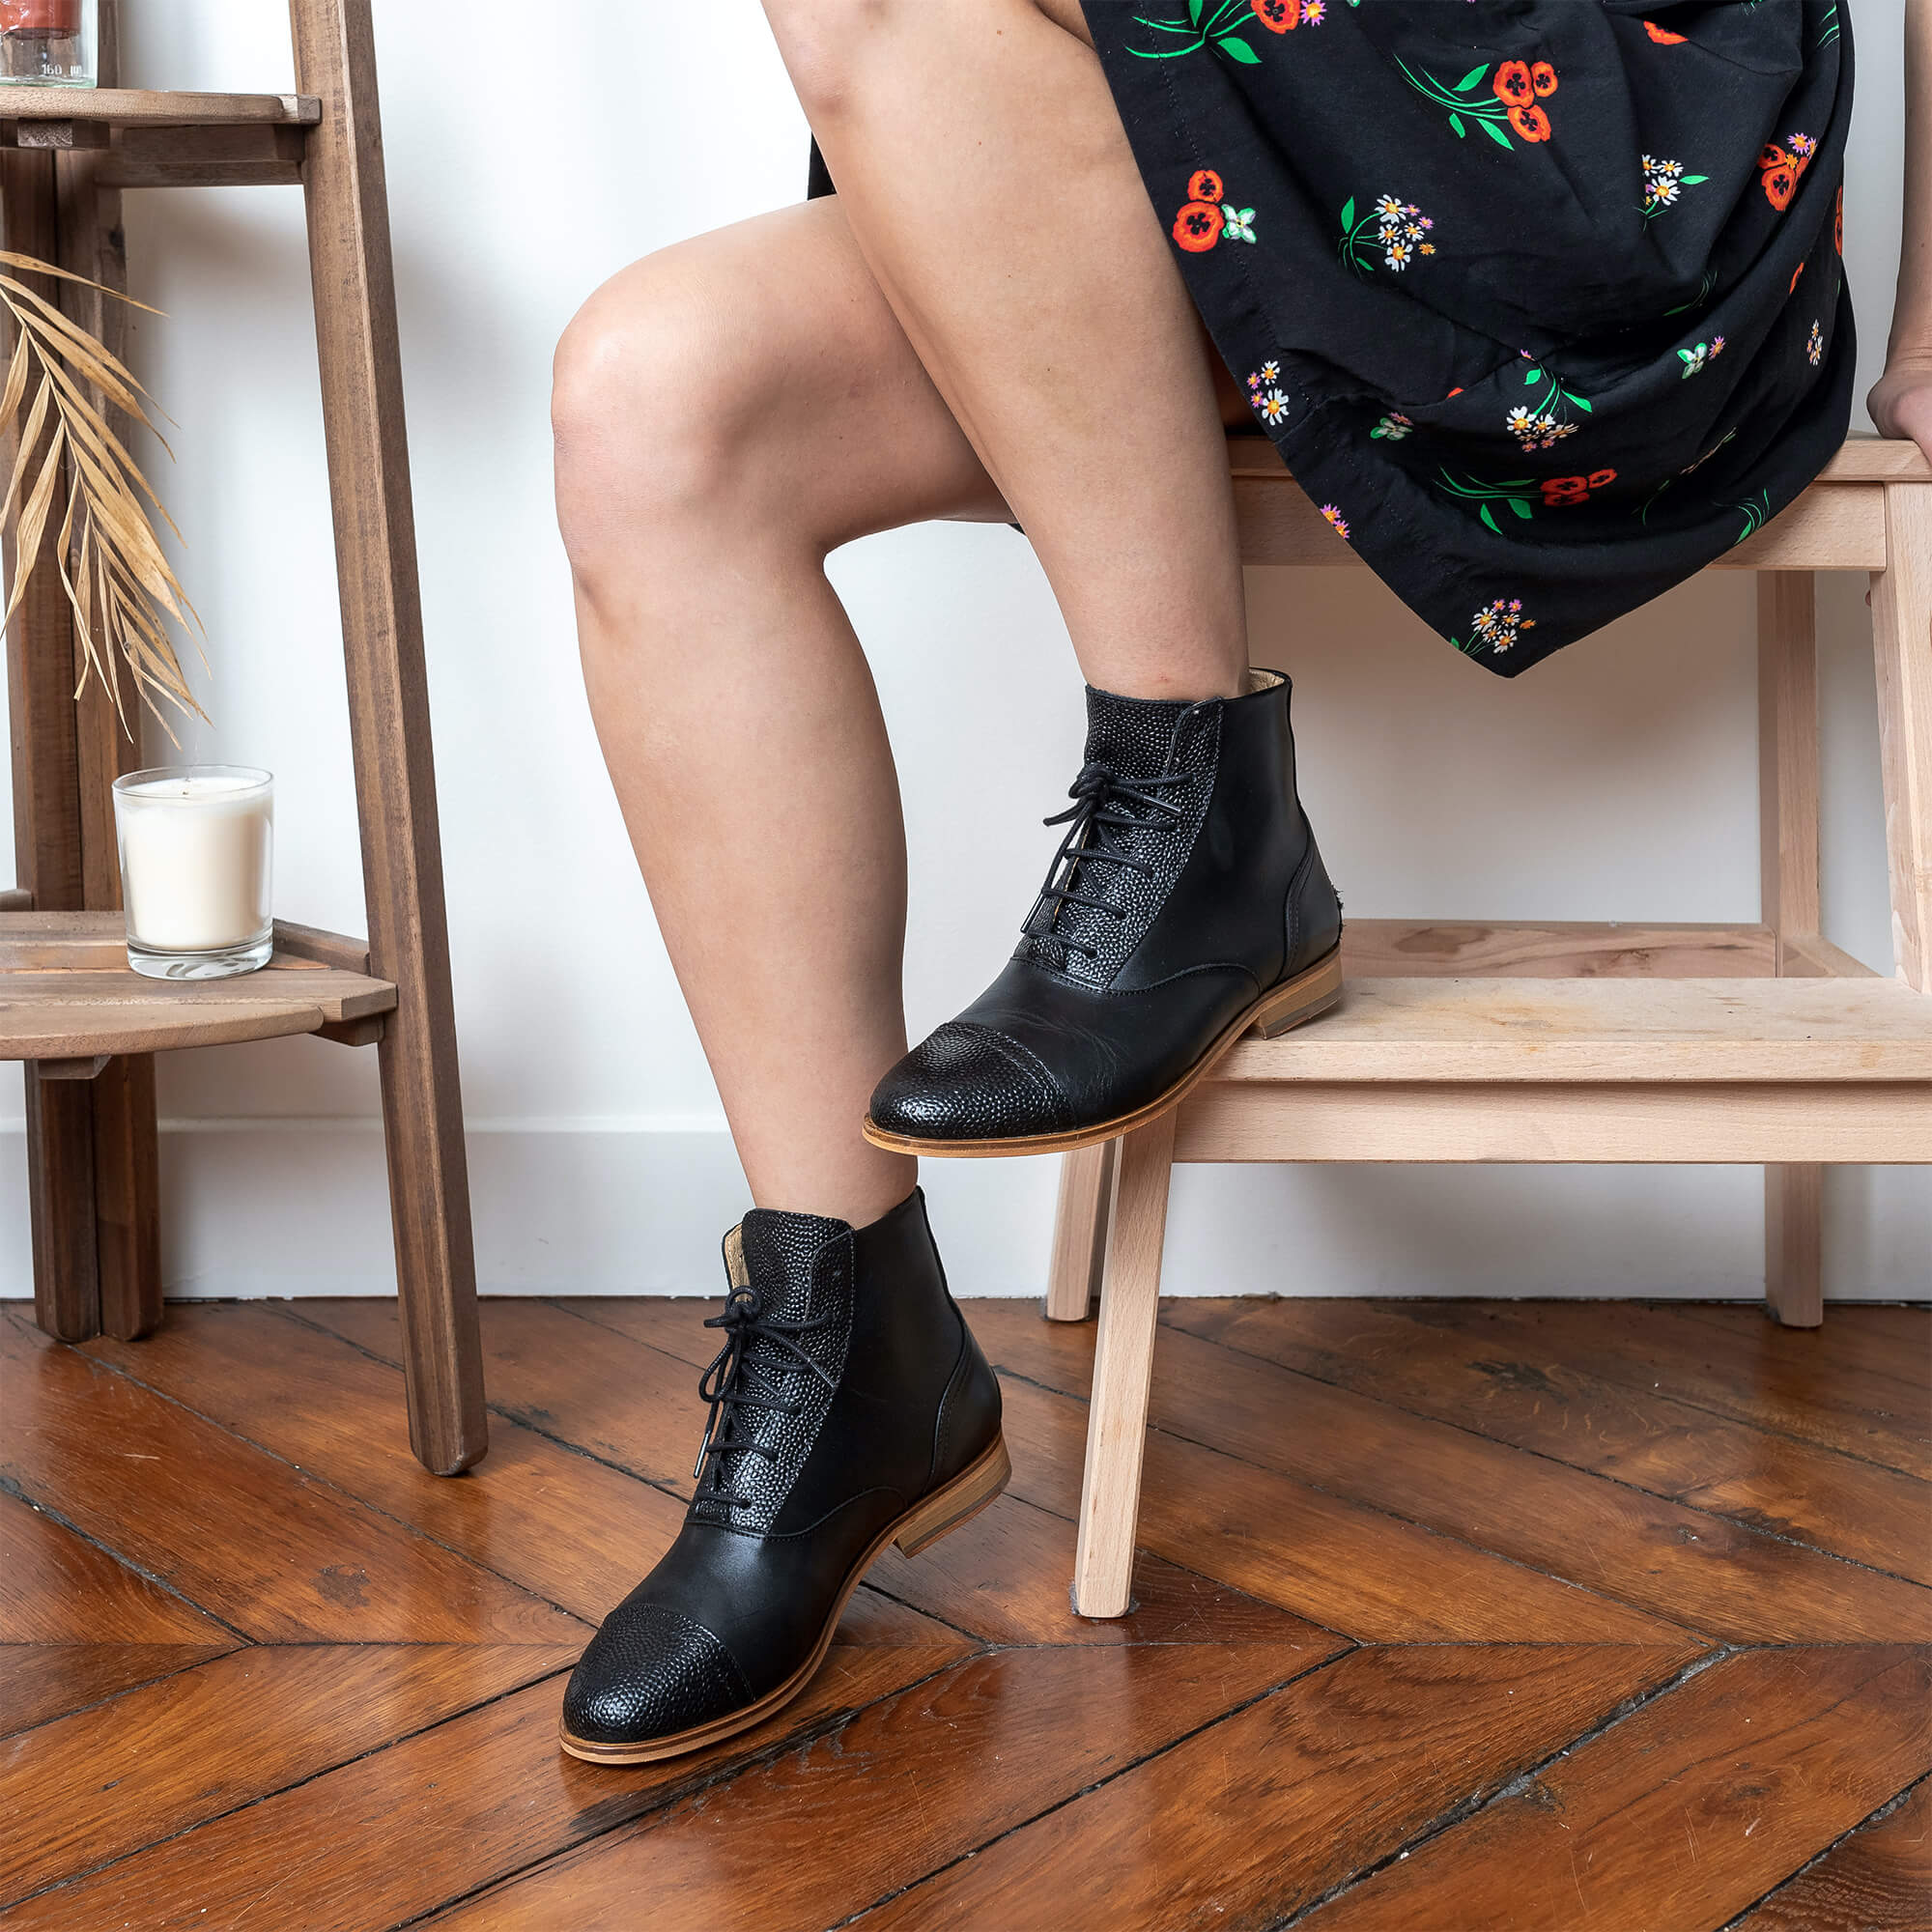 Mama Poppy Black smooth and textured leather boots picture